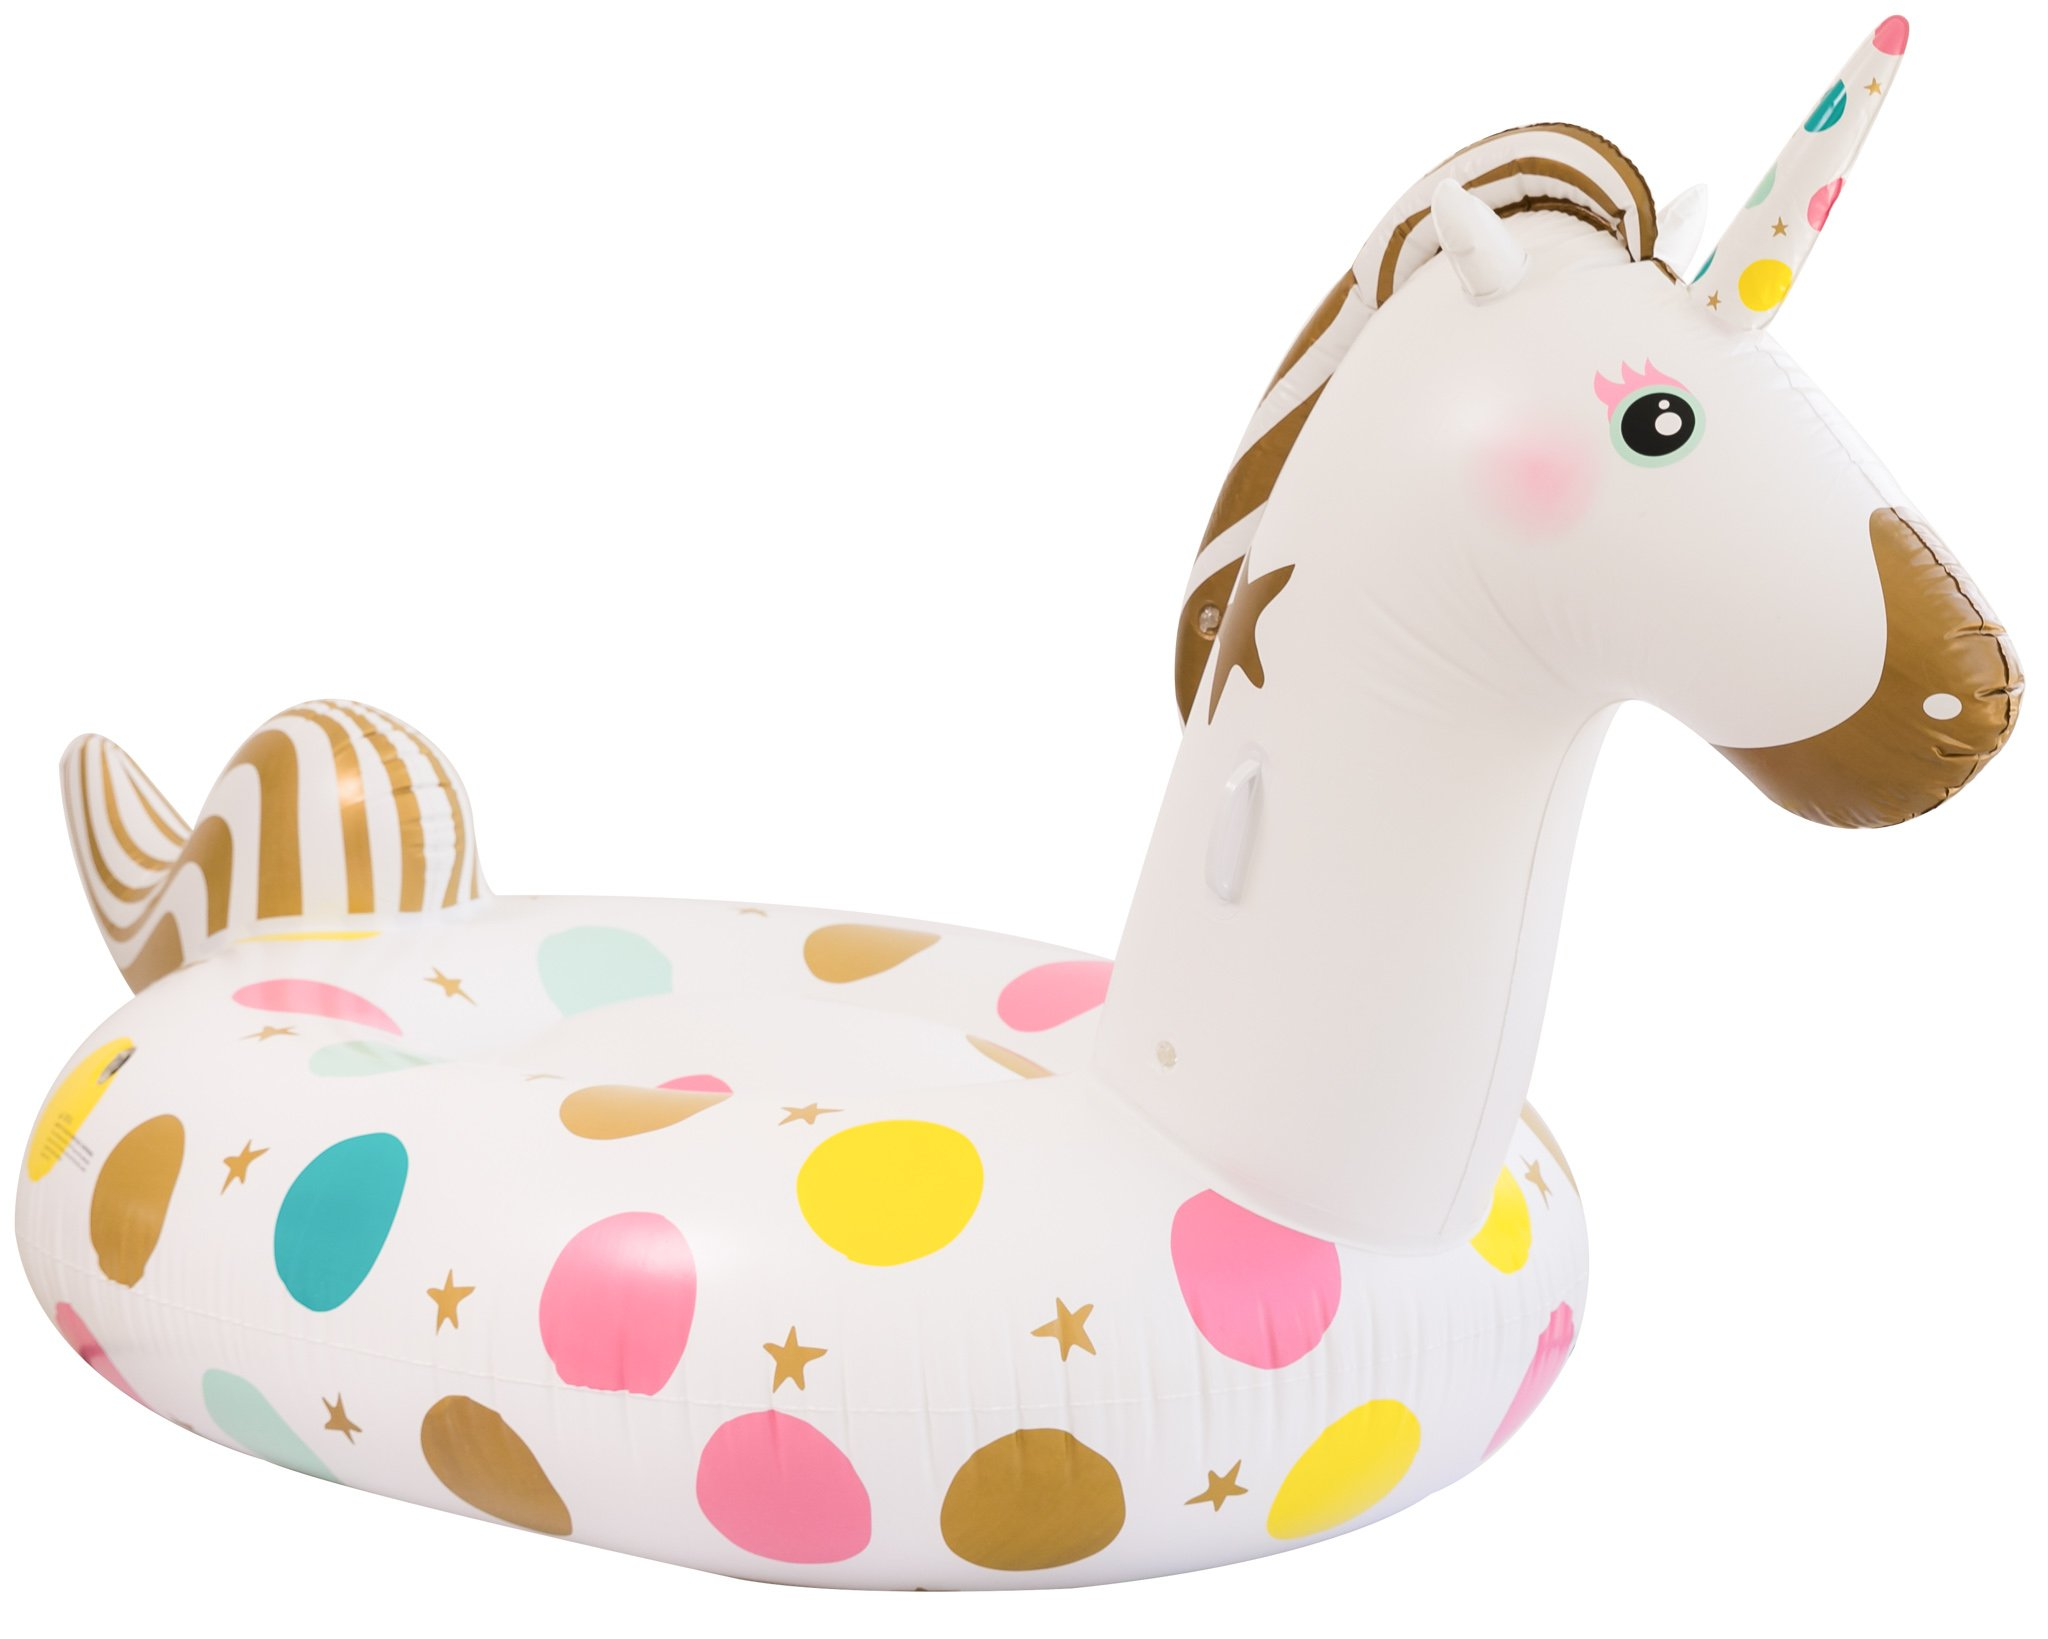 Unicorn Pool Float - Giant 107 x 44 x 55 Inches Inflatable Giant Unicorn Float Swimming Pool River Raft Float Unicorn… 4